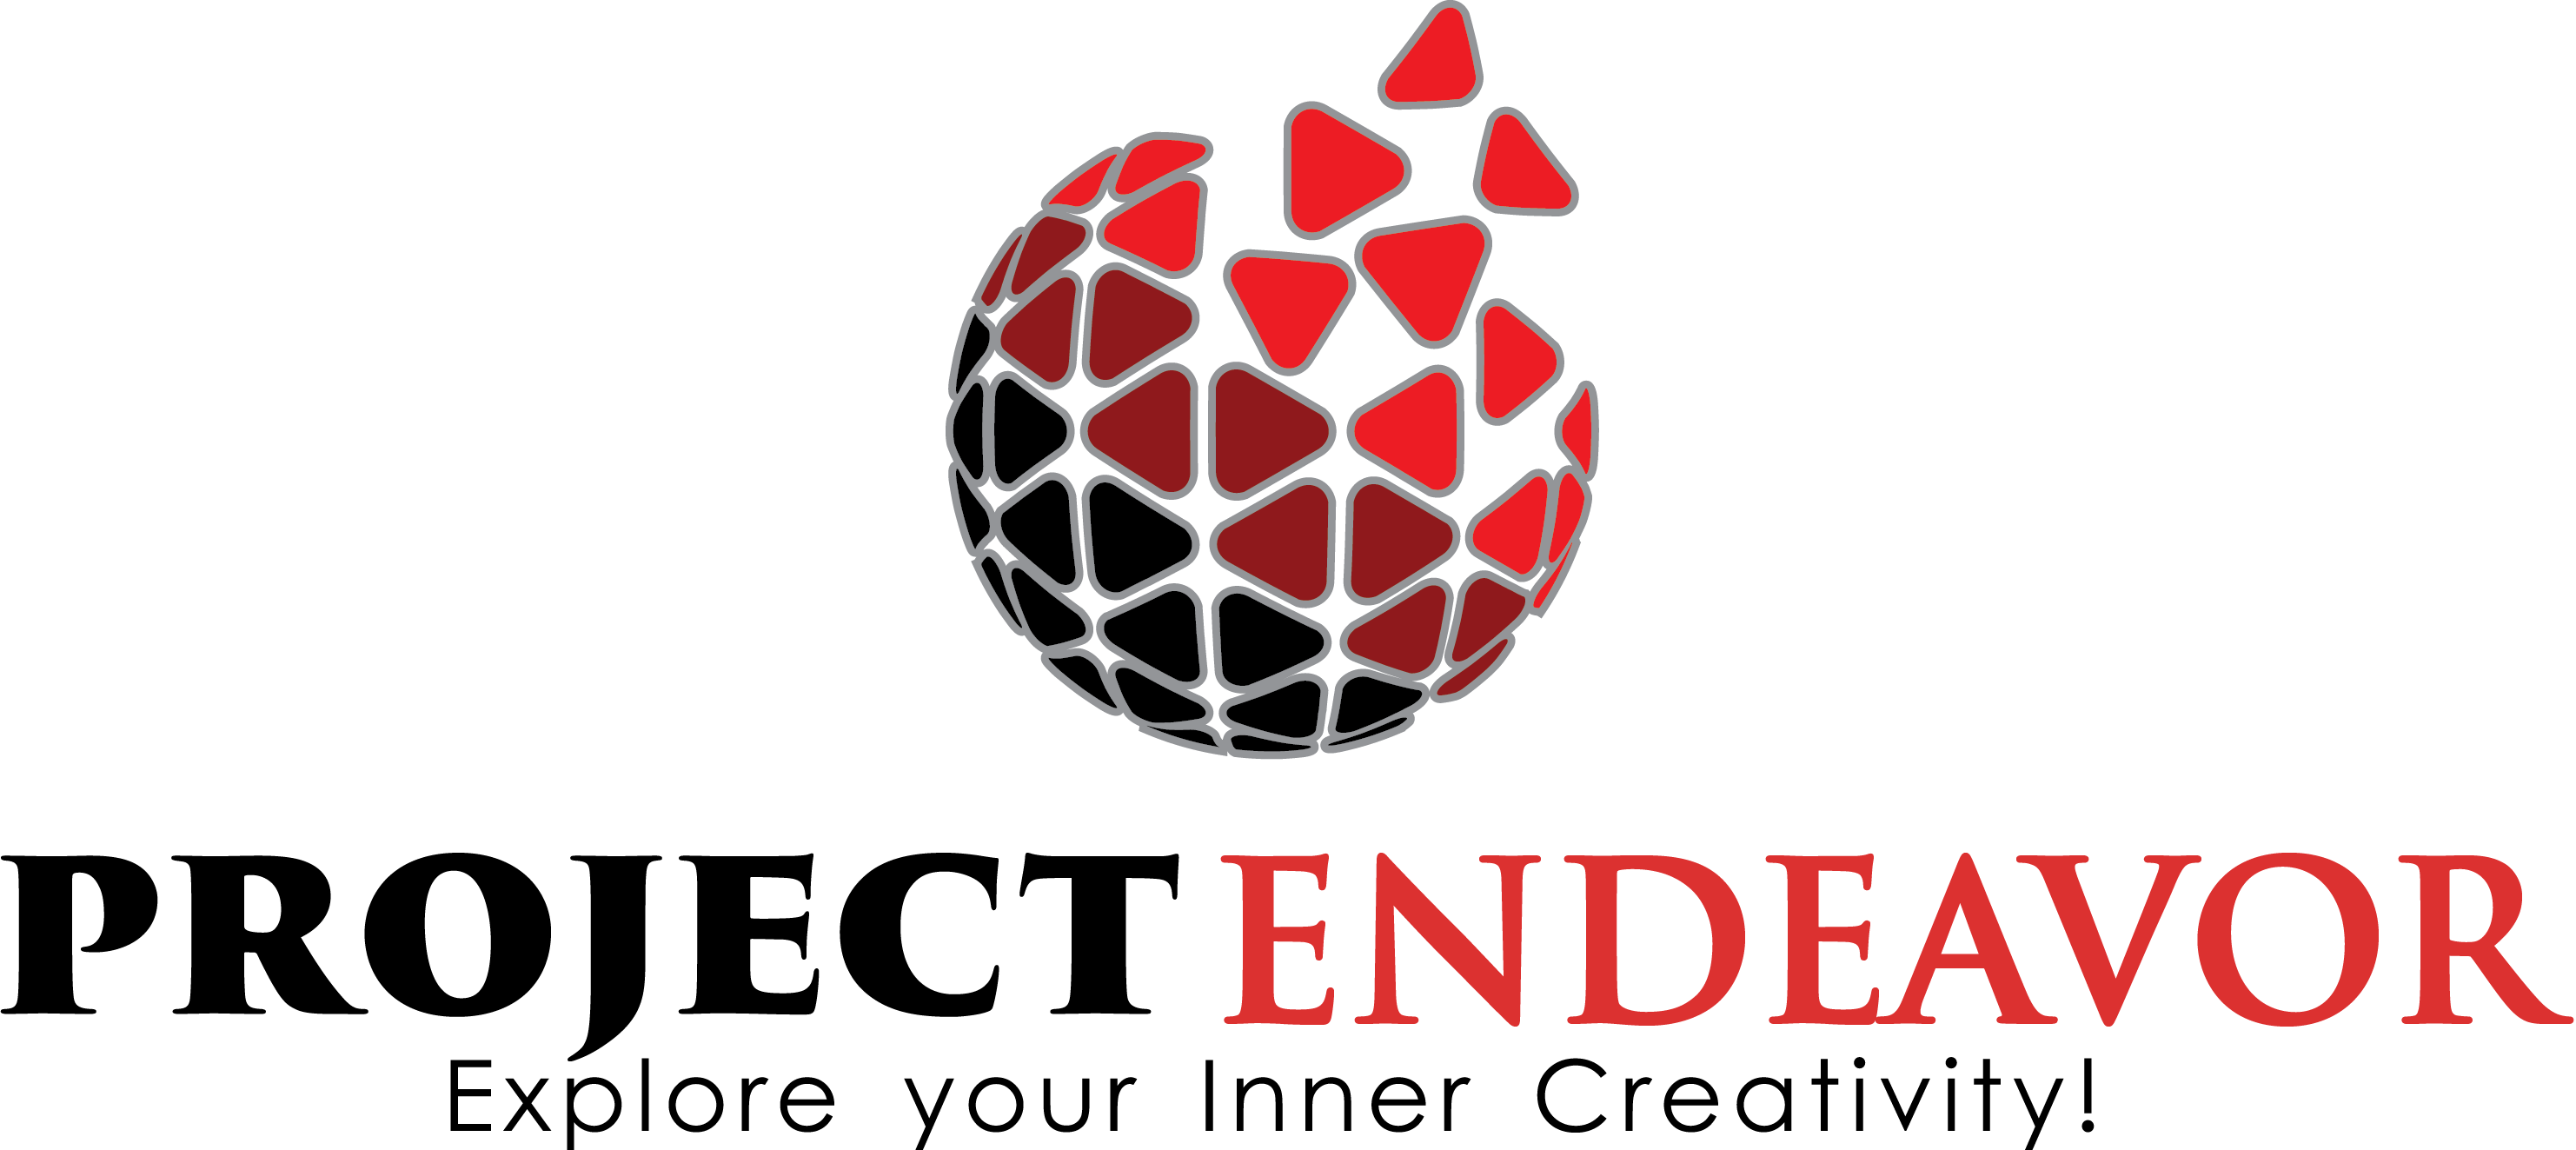 Product Endeavor Logo